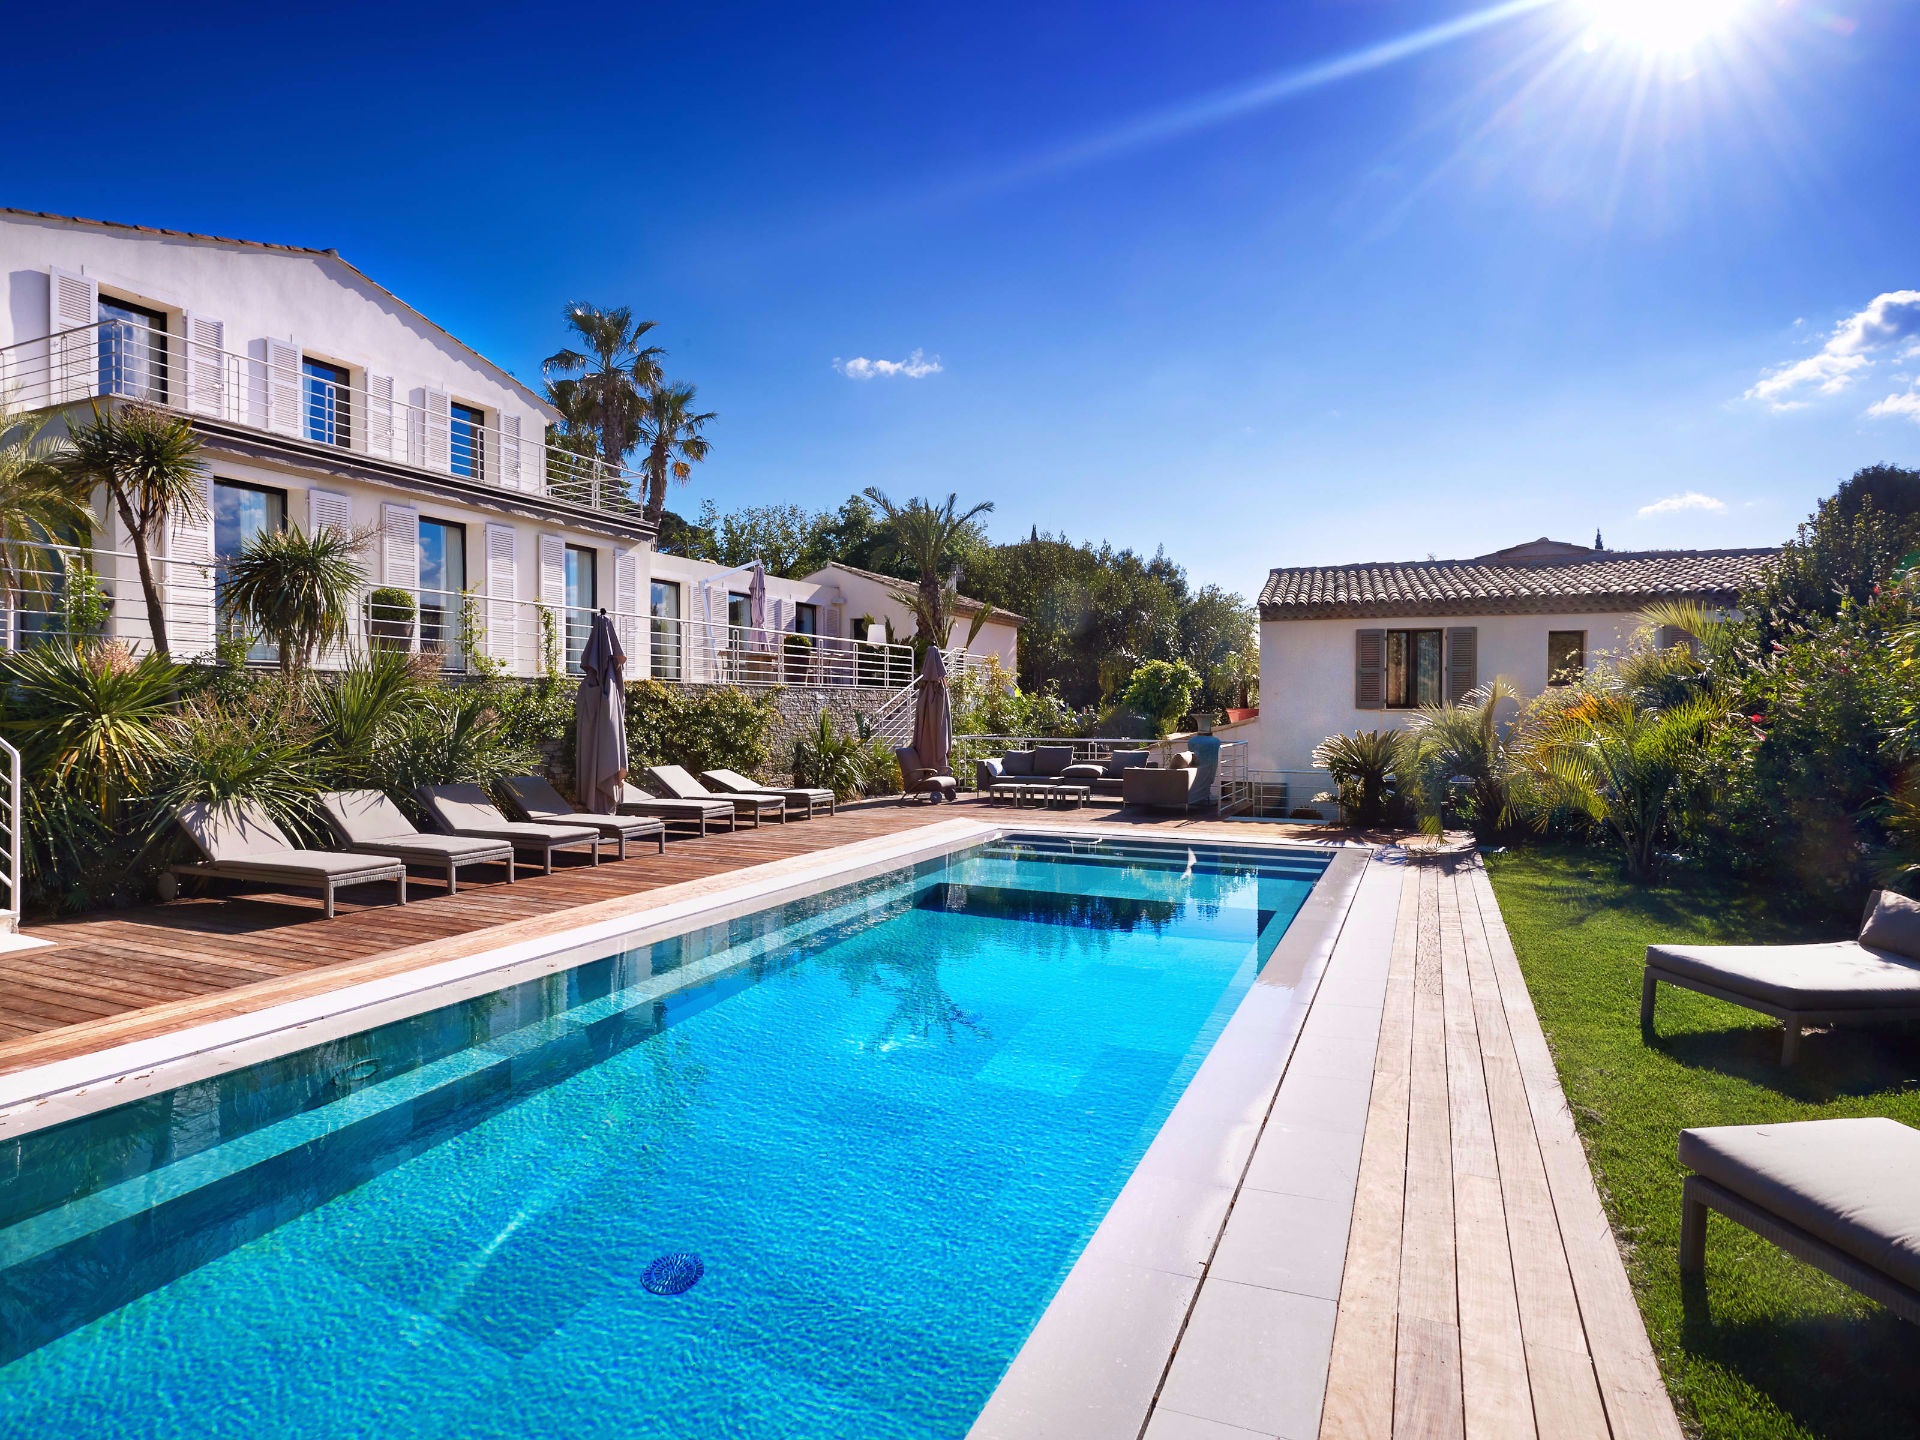 Single Family Home for Sale at Modern Townhouse with breathtaking sea view Saint Tropez Saint Tropez, Provence-Alpes-Cote D'Azur, 83990 France